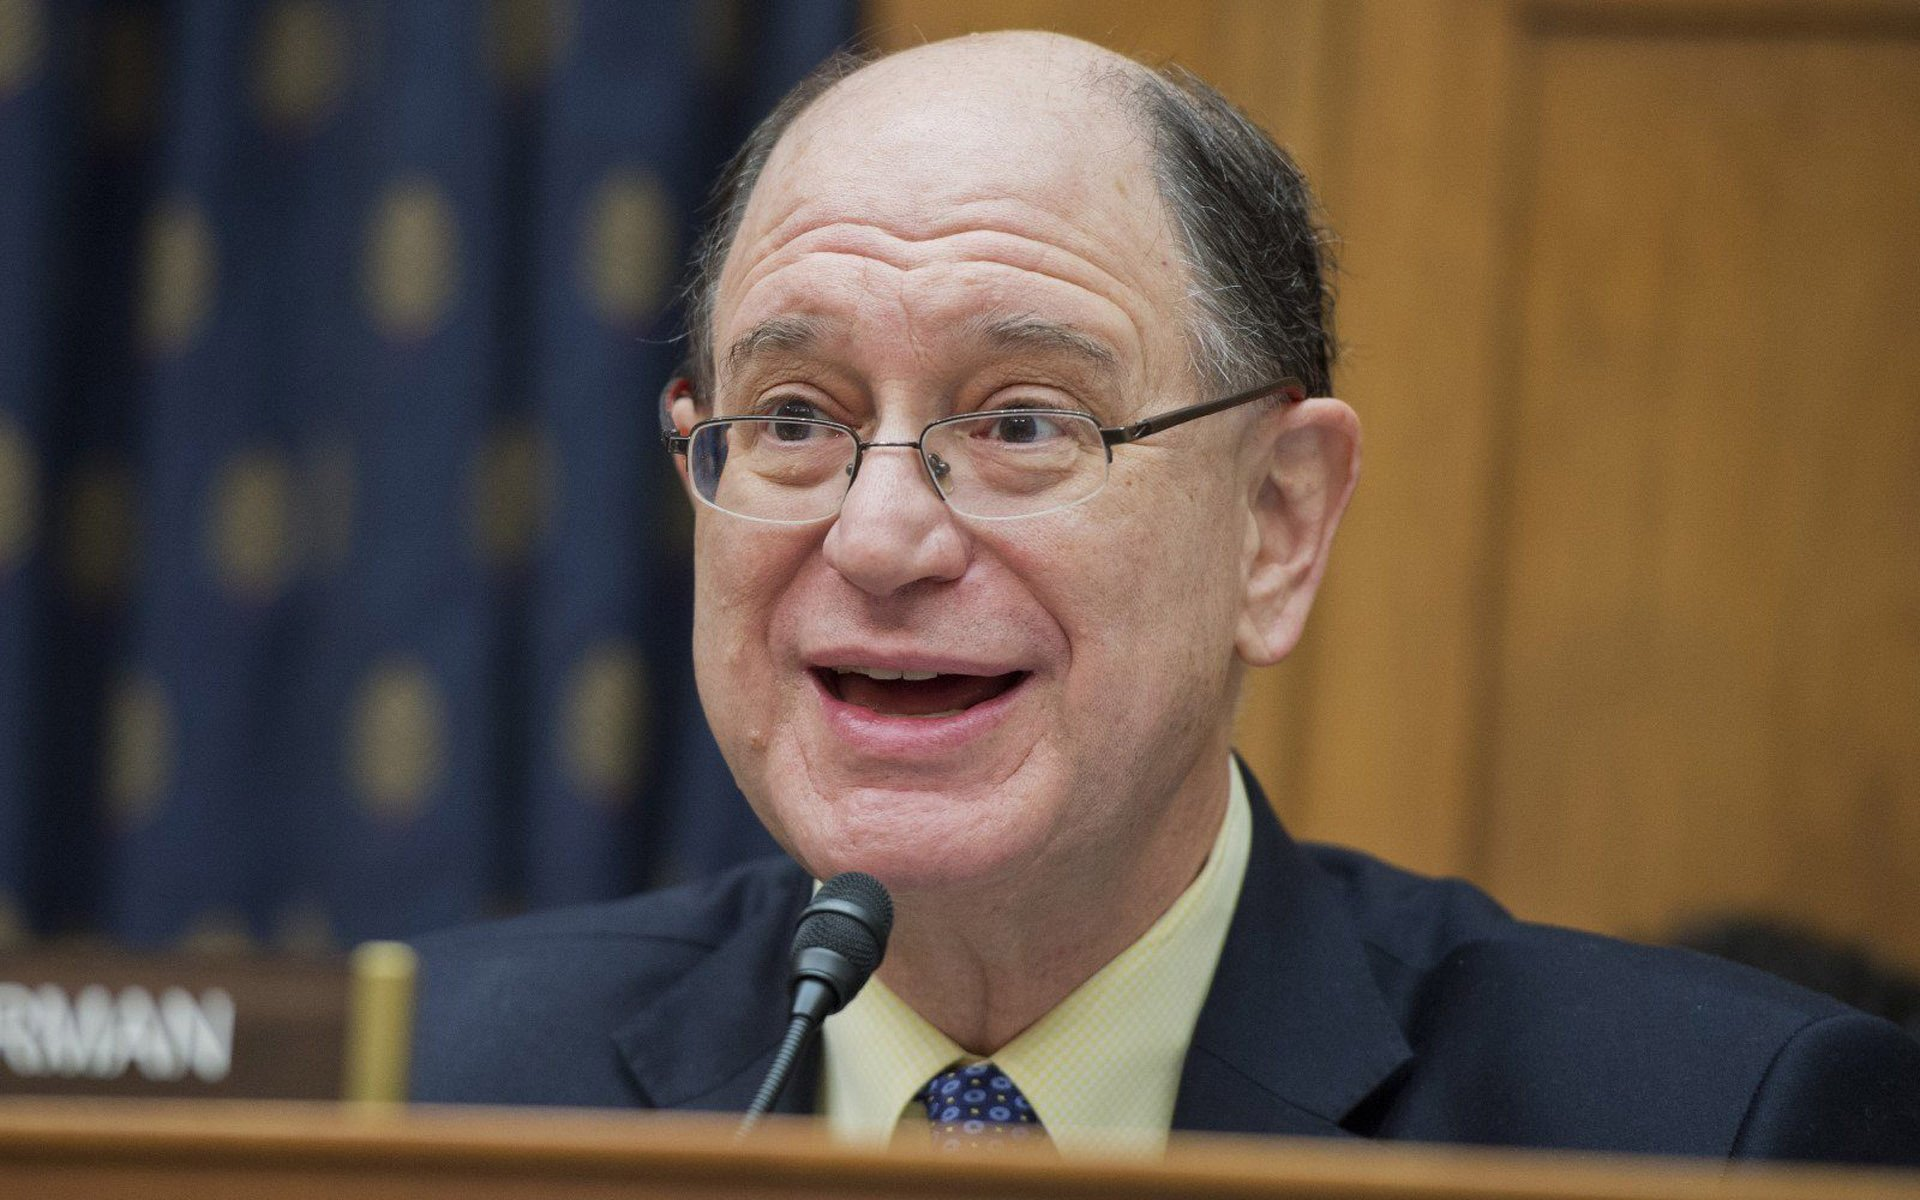 brad sherman ban bitcoin price